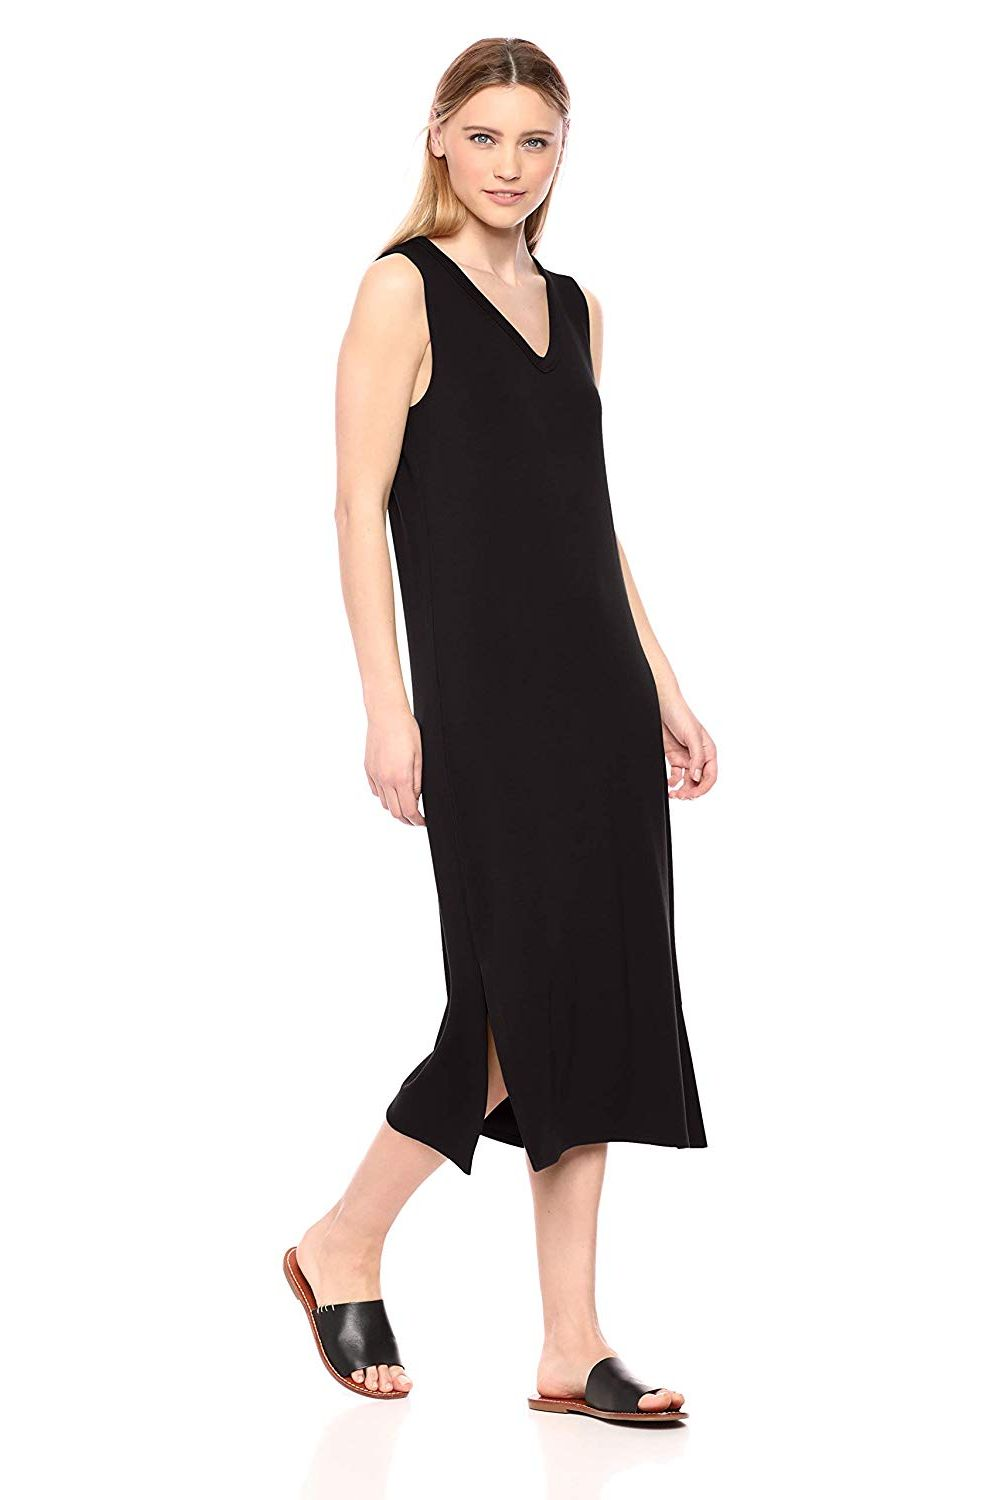 Daily Ritual Women's Supersoft Terry Sleeveless V-Neck Midi Dress